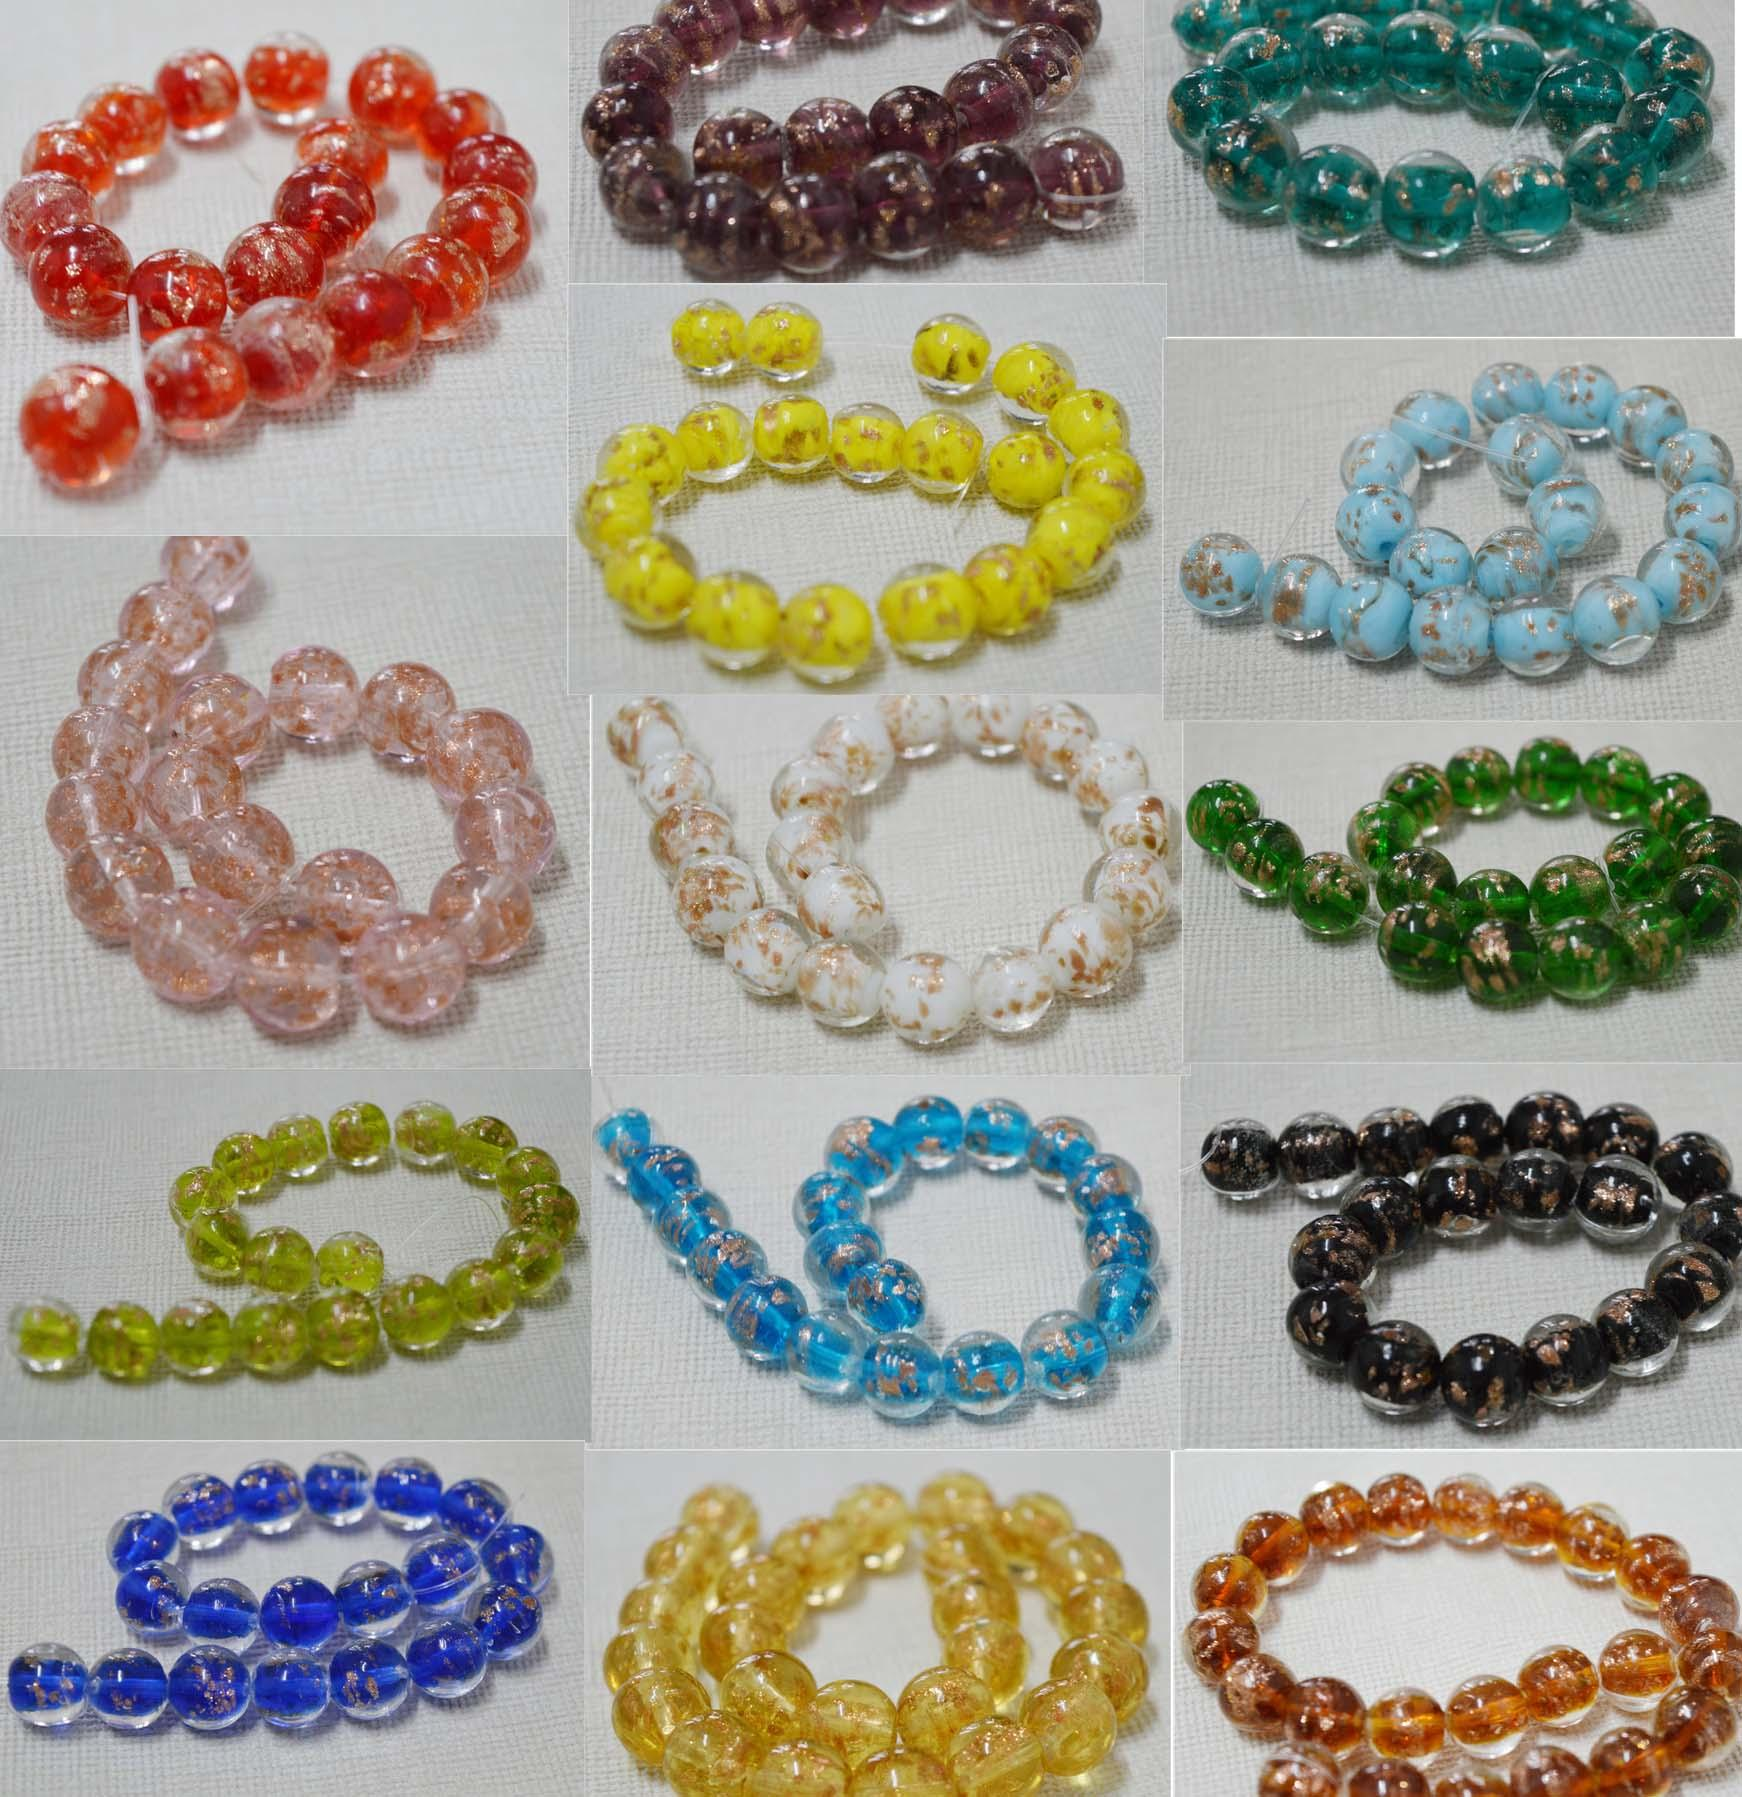 bulk vase table gems products collections decoration scatter in beads assorted wholesale sale acrylic pearls buy for